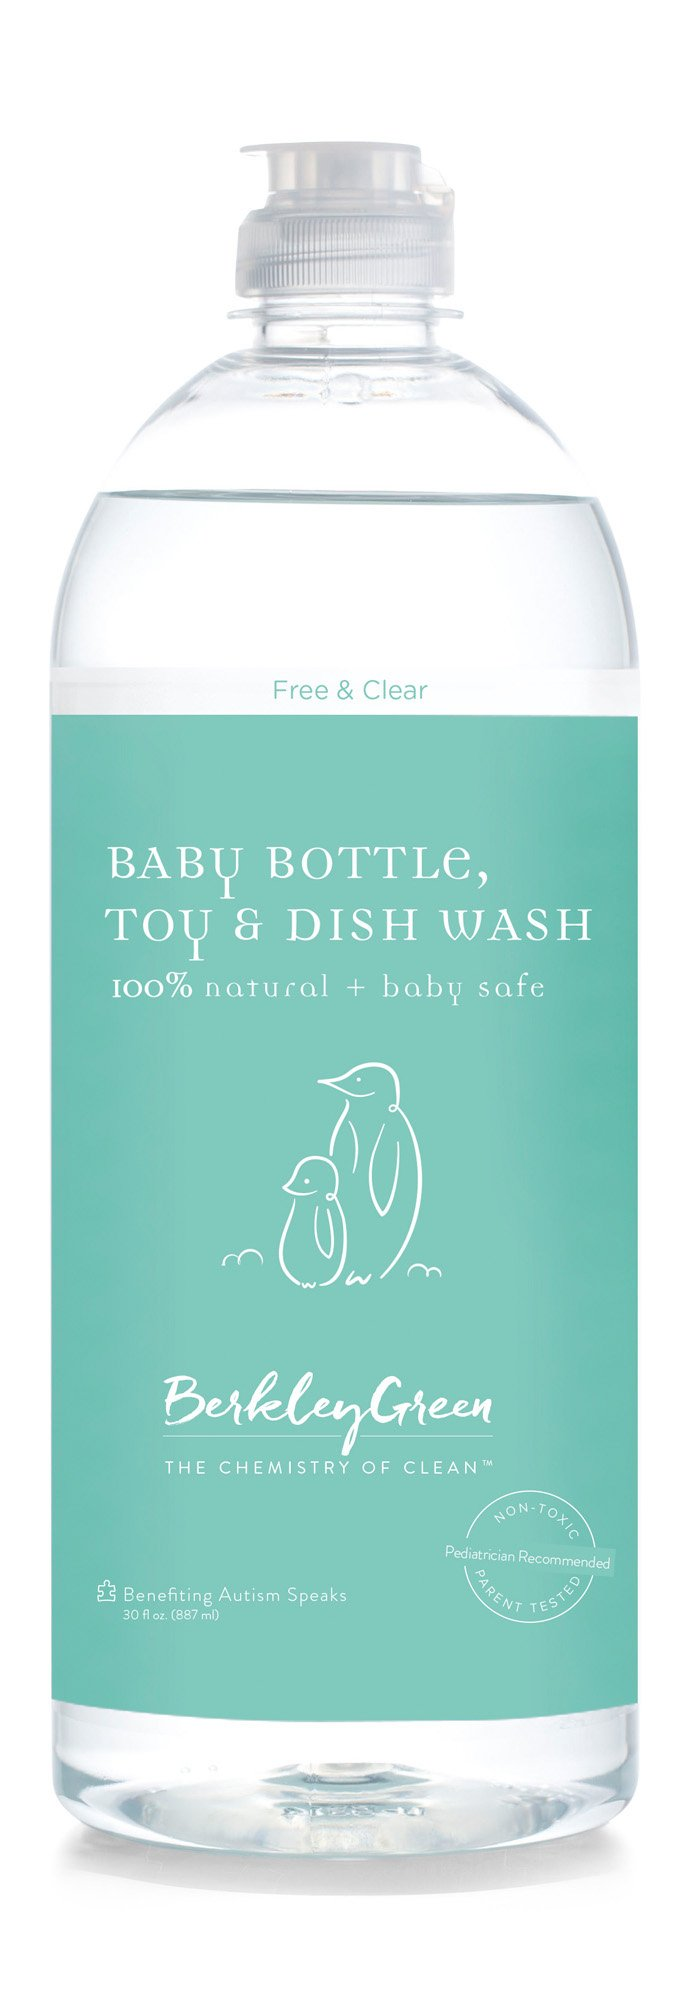 Berkley Green Baby Natural Non -Toxic Dish & Bottle Soap (liquid) Free & Clear - 3 pack